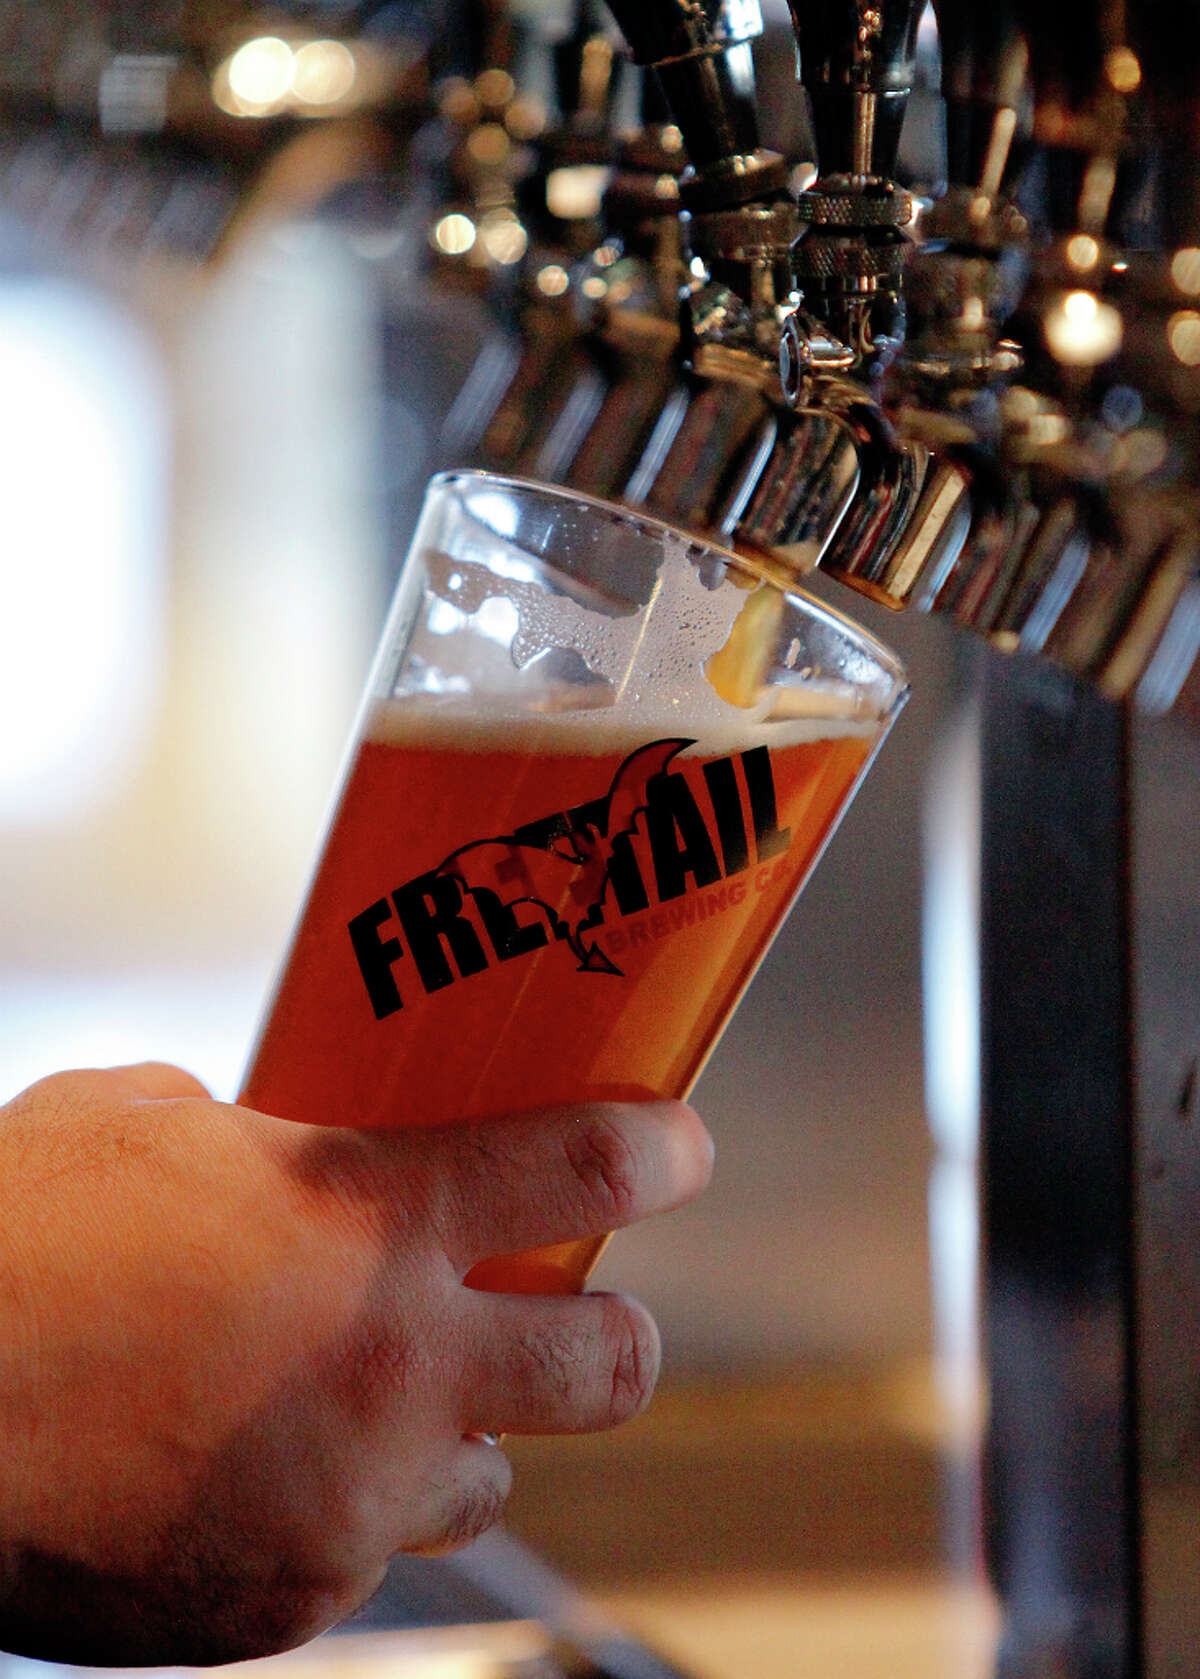 Scott Metzger, founder and CEO of Freetail Brewing Company in San Antonio, has been instrumental in a state-wide effort to change distribution laws to allow brewpubs to distribute their beers throughout Texas.